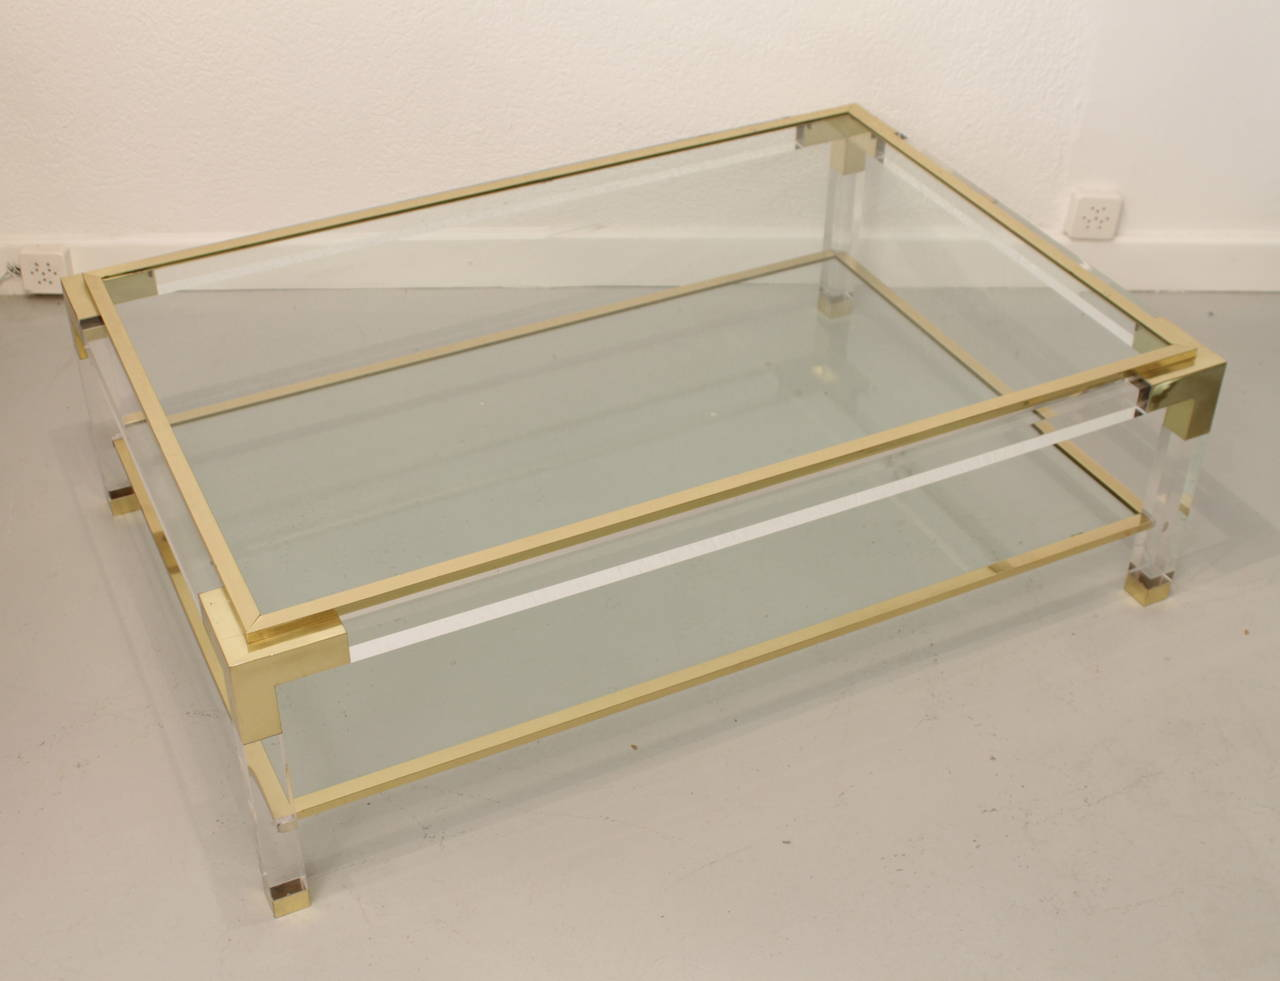 Modern Coffee Table Storage Available Also In Painted Glass As Per Samples In The Bright Or Mat Version (View 2 of 10)